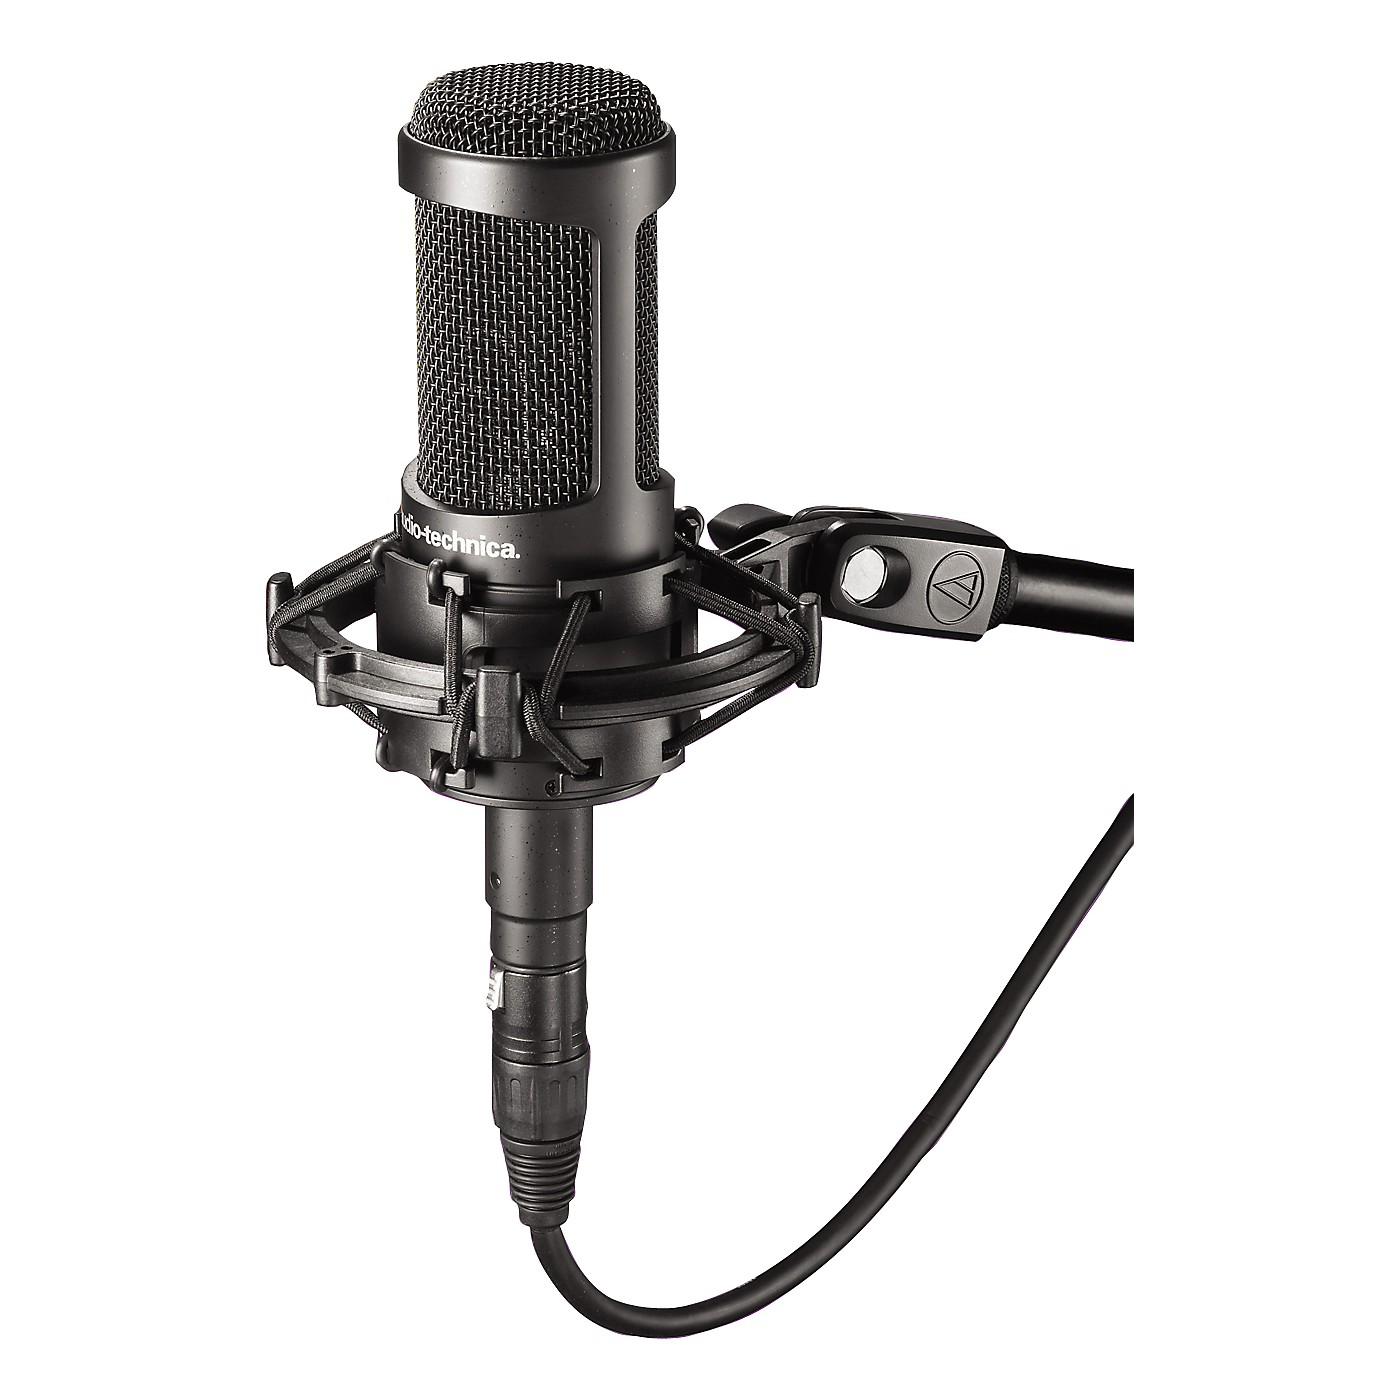 Audio-Technica AT2050 Multi-Pattern Large Diaphragm Condenser Microphone thumbnail